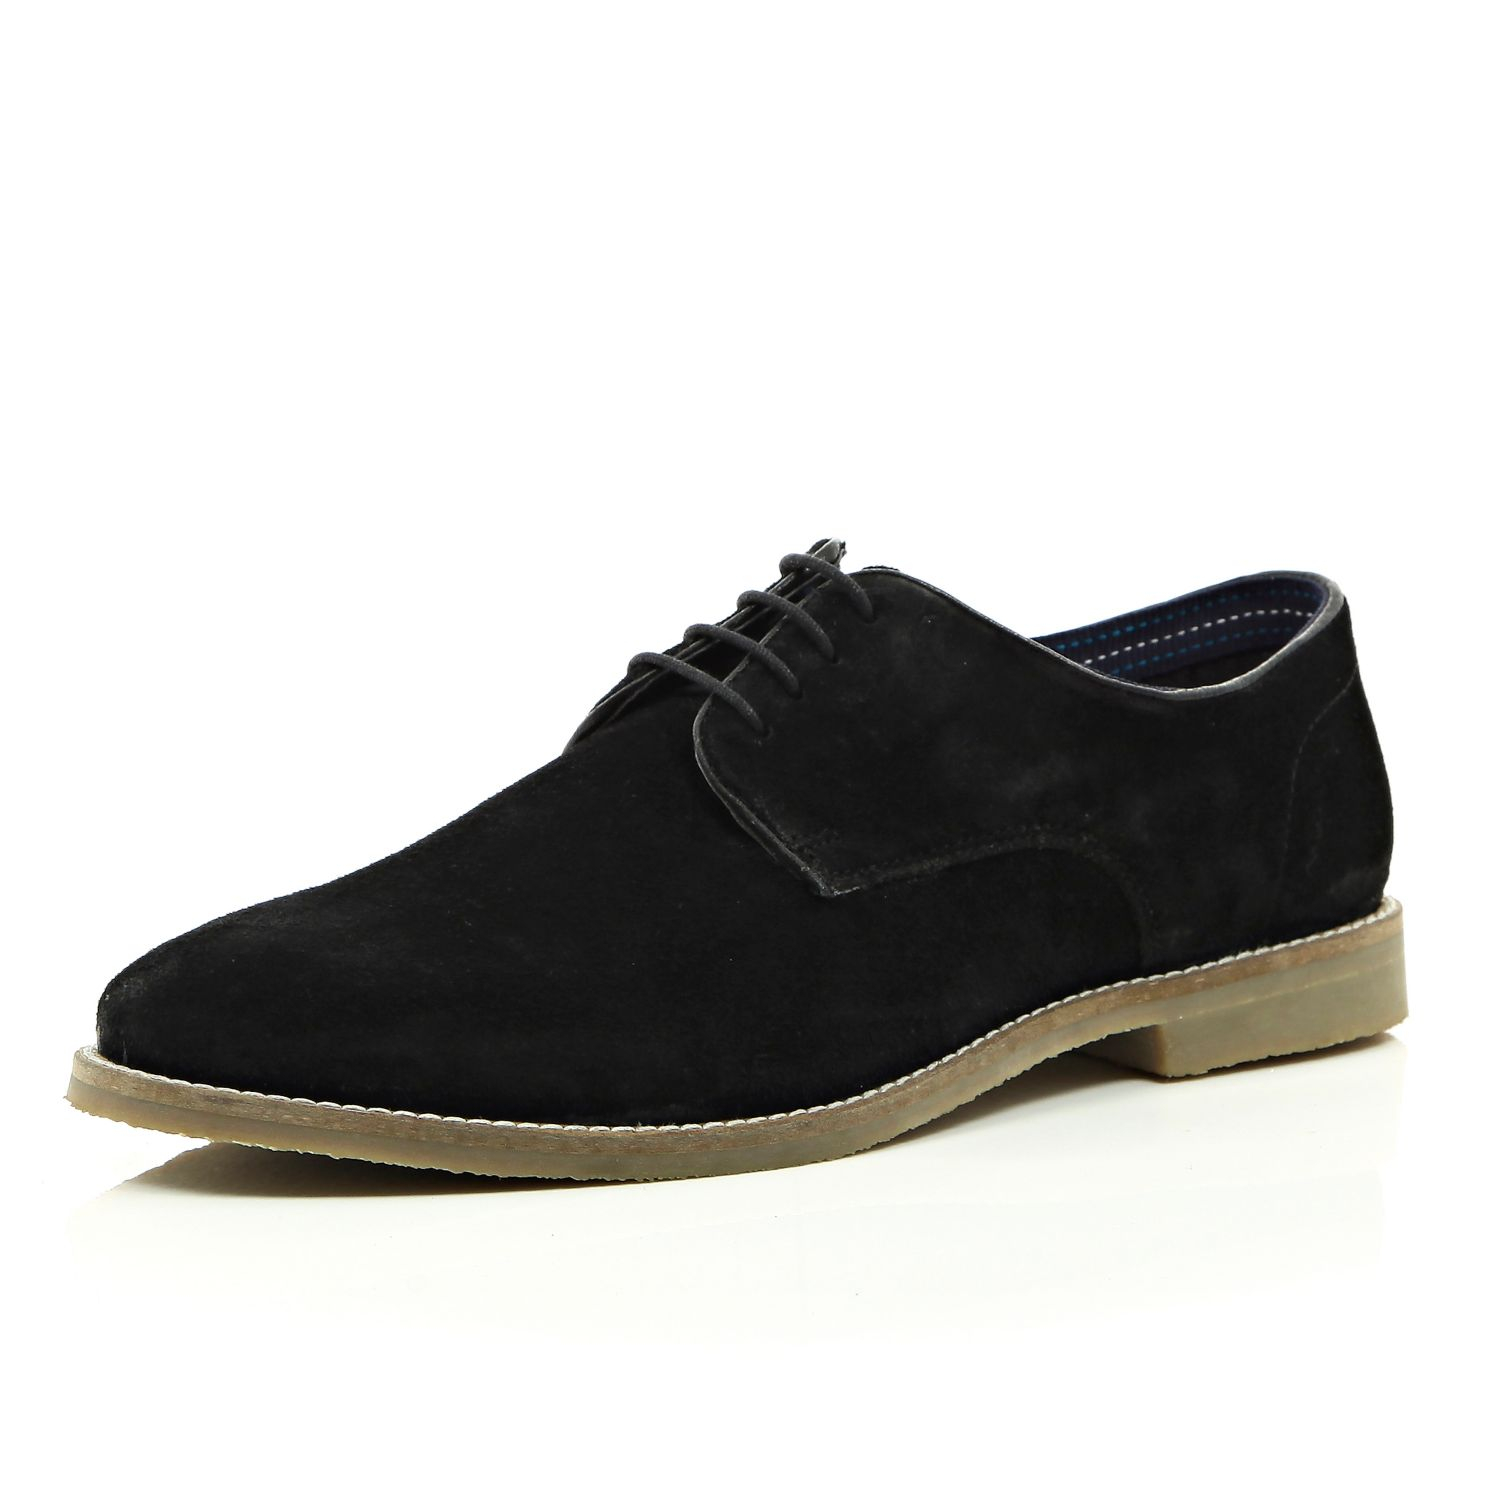 river island black suede formal shoes in black for lyst